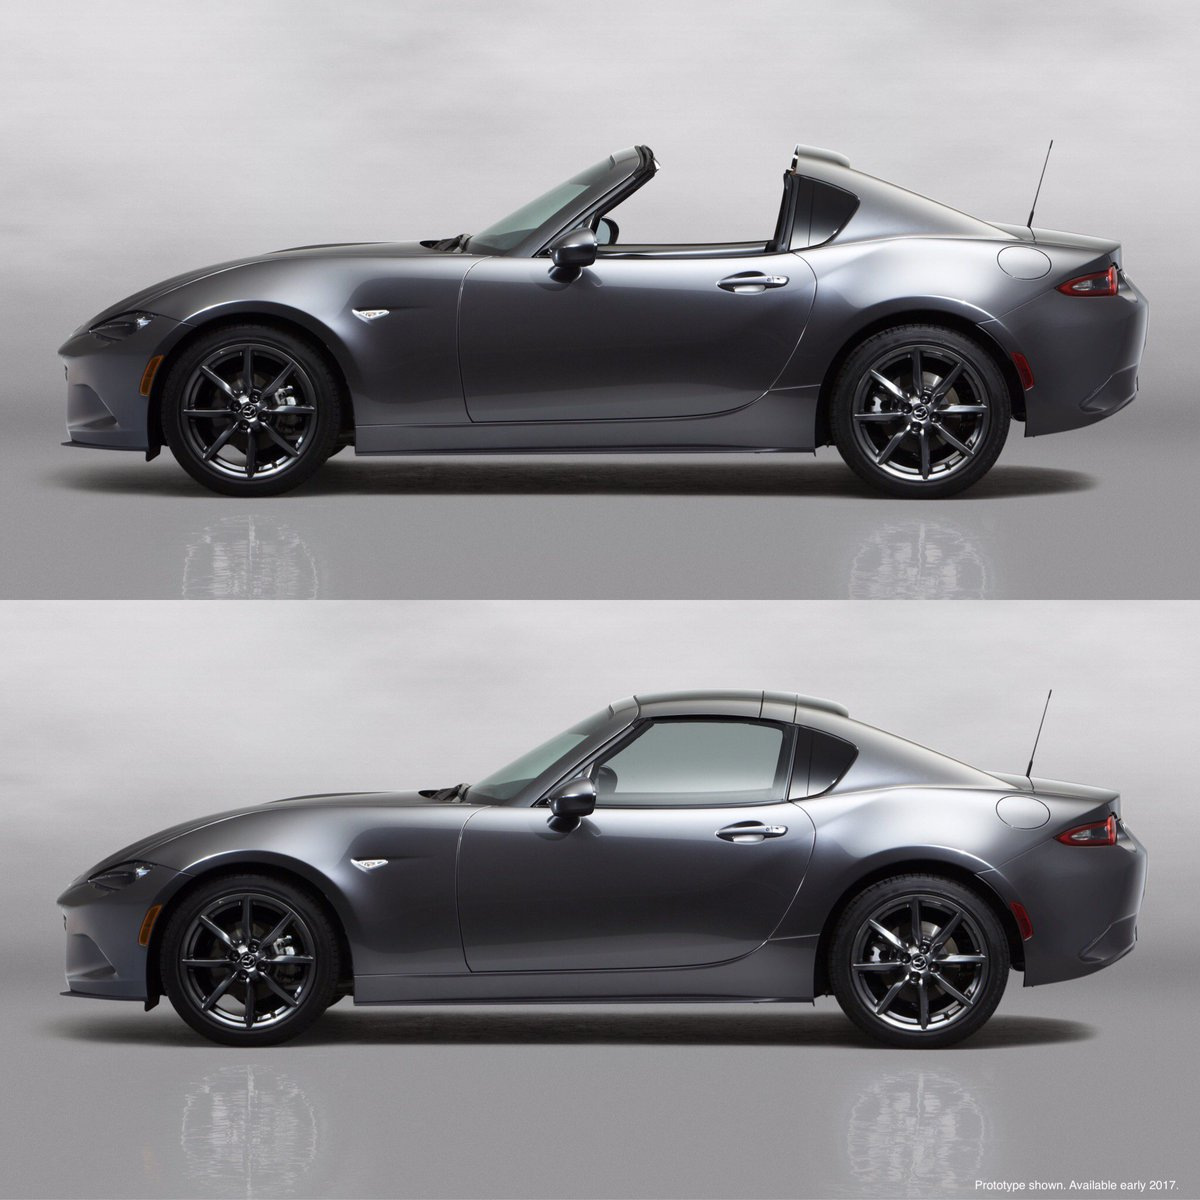 Introducing the Mazda #MX5 Miata RF. A retractable roof with fastback styling. #MX5RF #DrivingMatters https://t.co/bgEFhcxaAJ